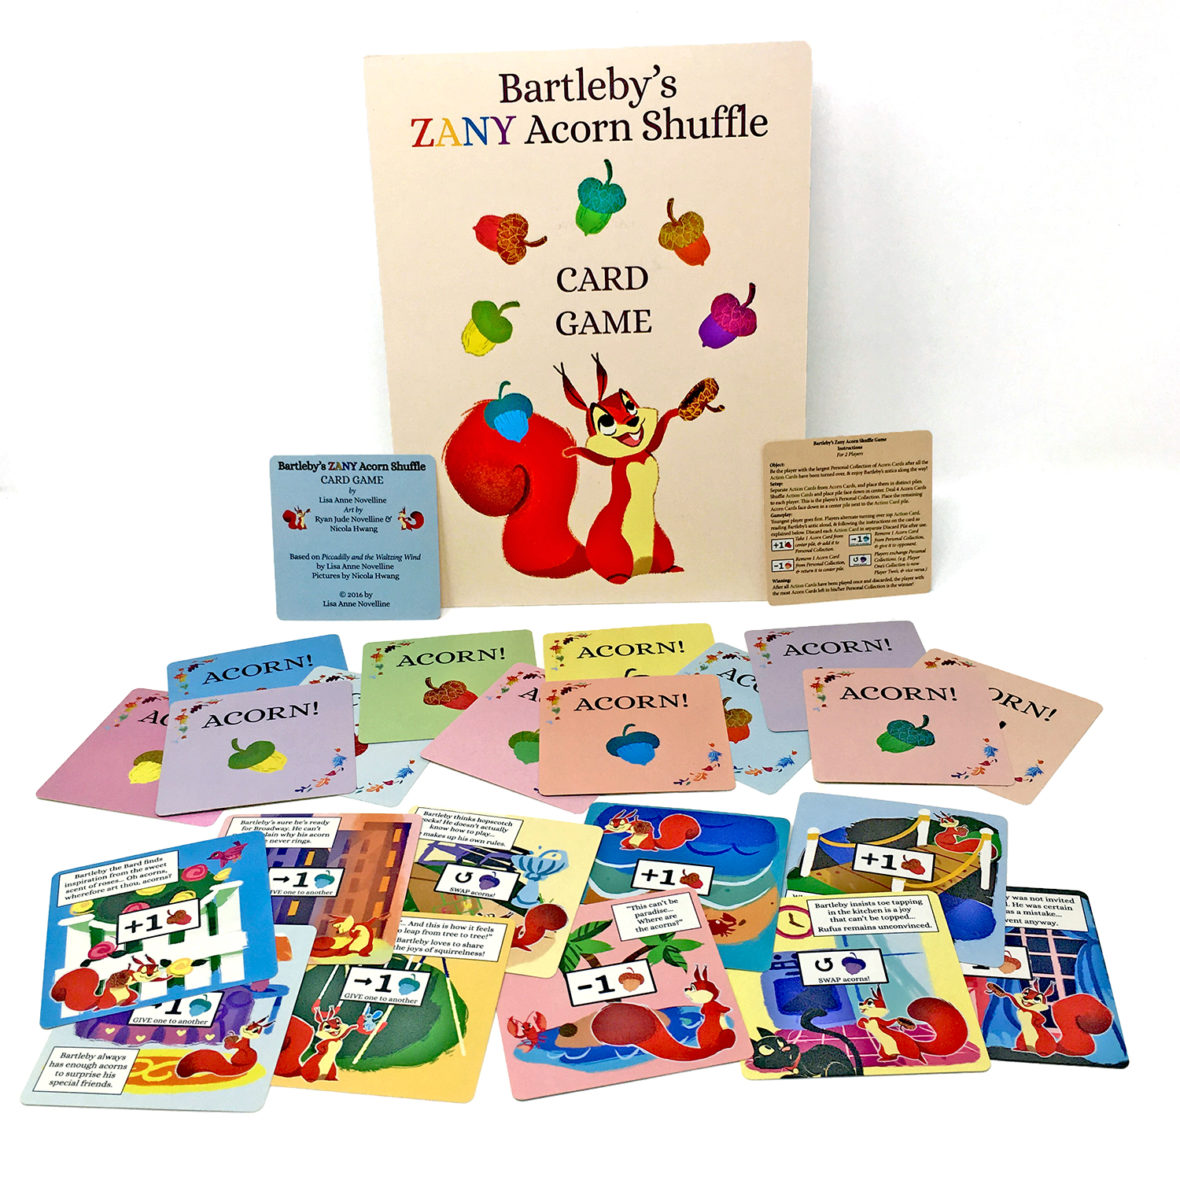 Bartleby's ZANY Acorn Shuffle Card Game based on Batleby the squirrel from Piccadilly and the Waltzing Wind by Lisa Anne Novelline; pictures by Nicola Hwang